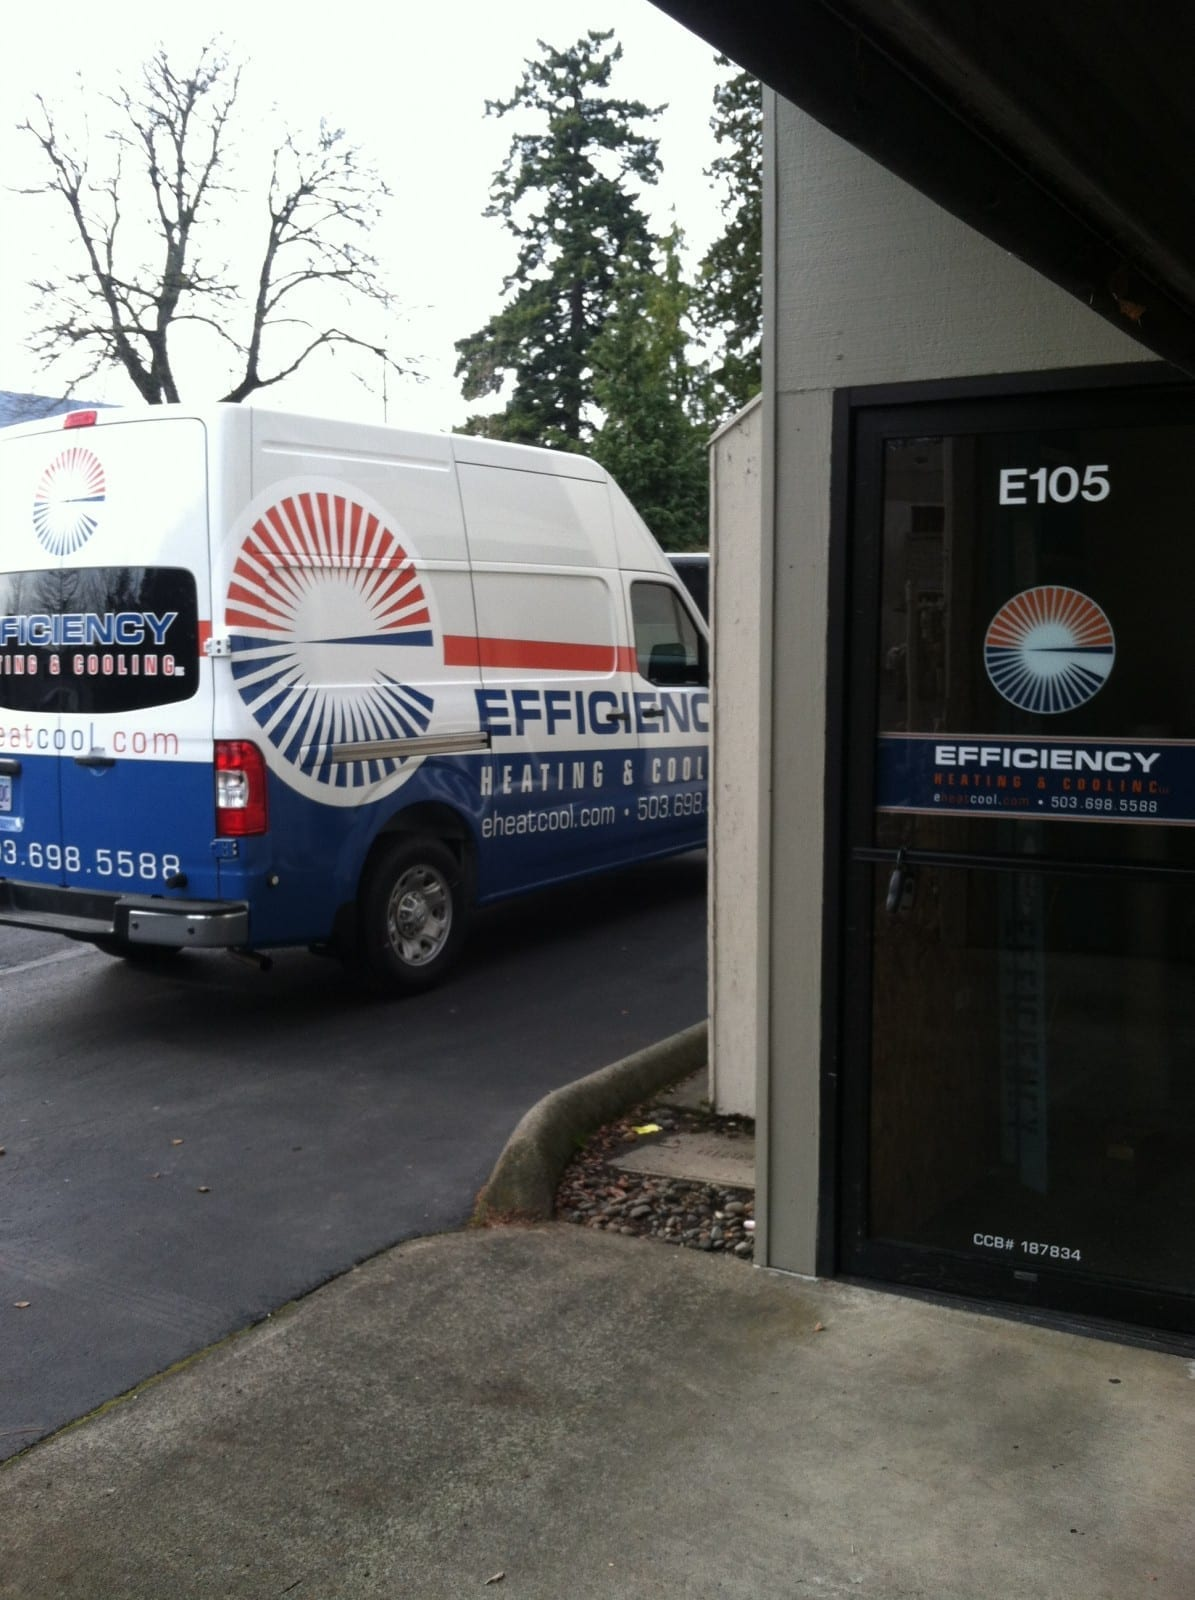 Efficiency Heating Air Conditioning Gas Furnace Heat Pumps Ductwork Gas Lines Portland Oregon